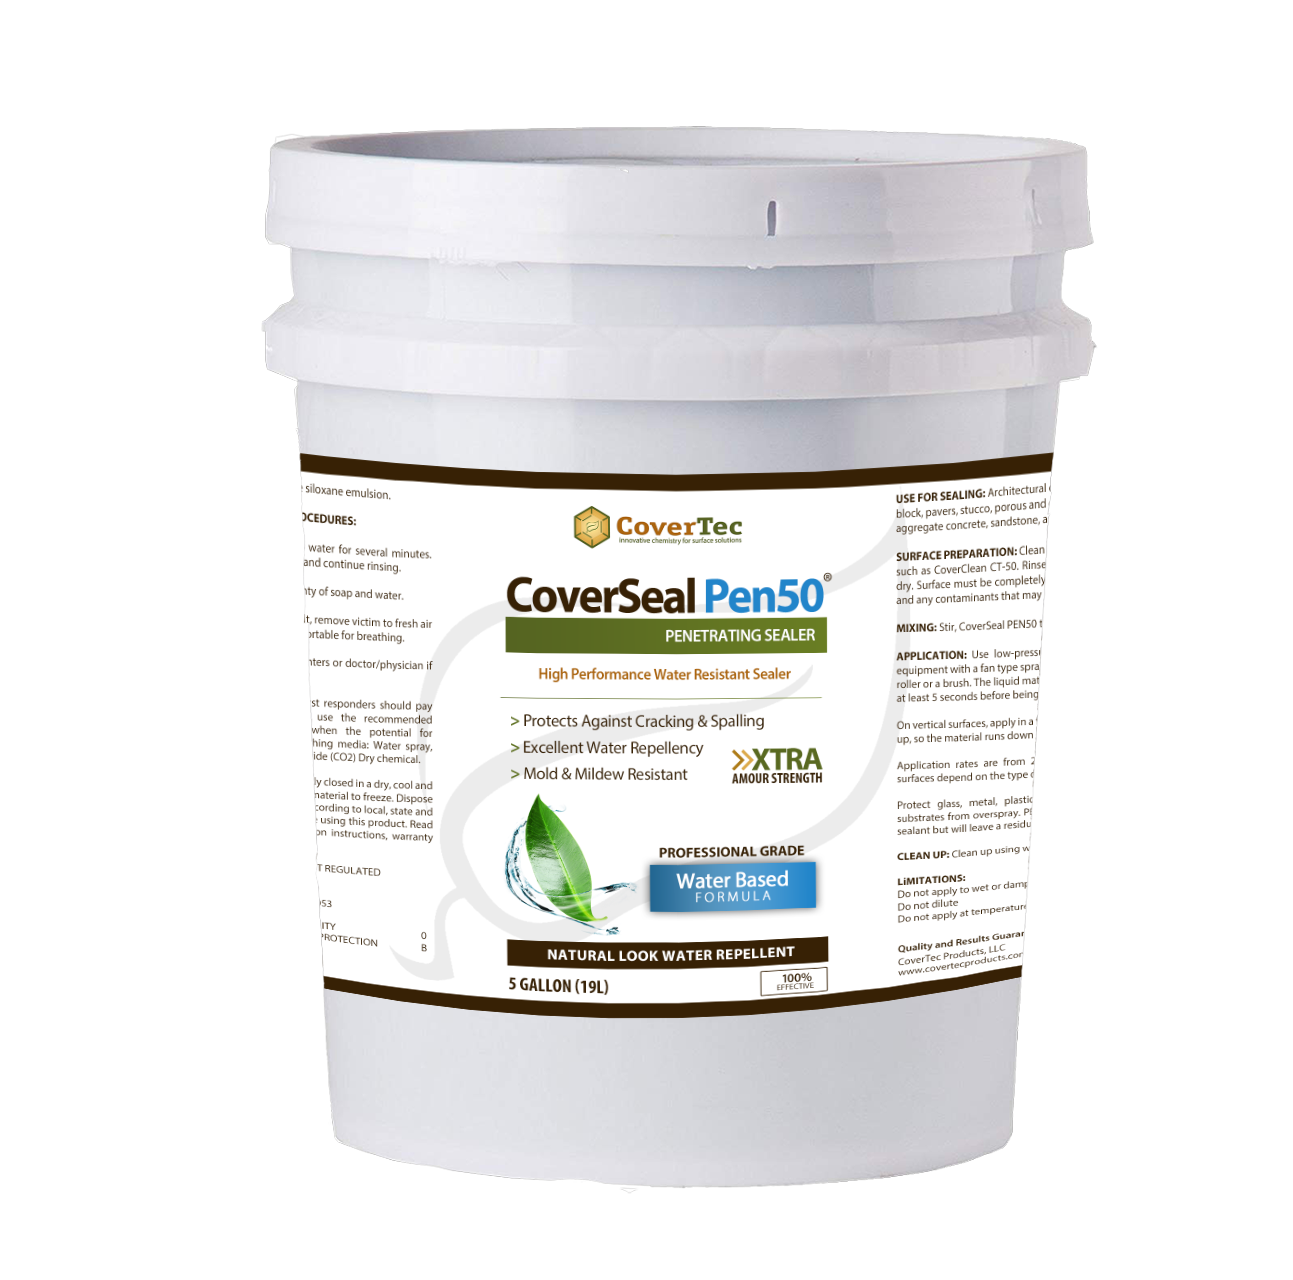 CoverSeal PEN 50 Water, Salt And Mold Resistant Penetrating Sealer